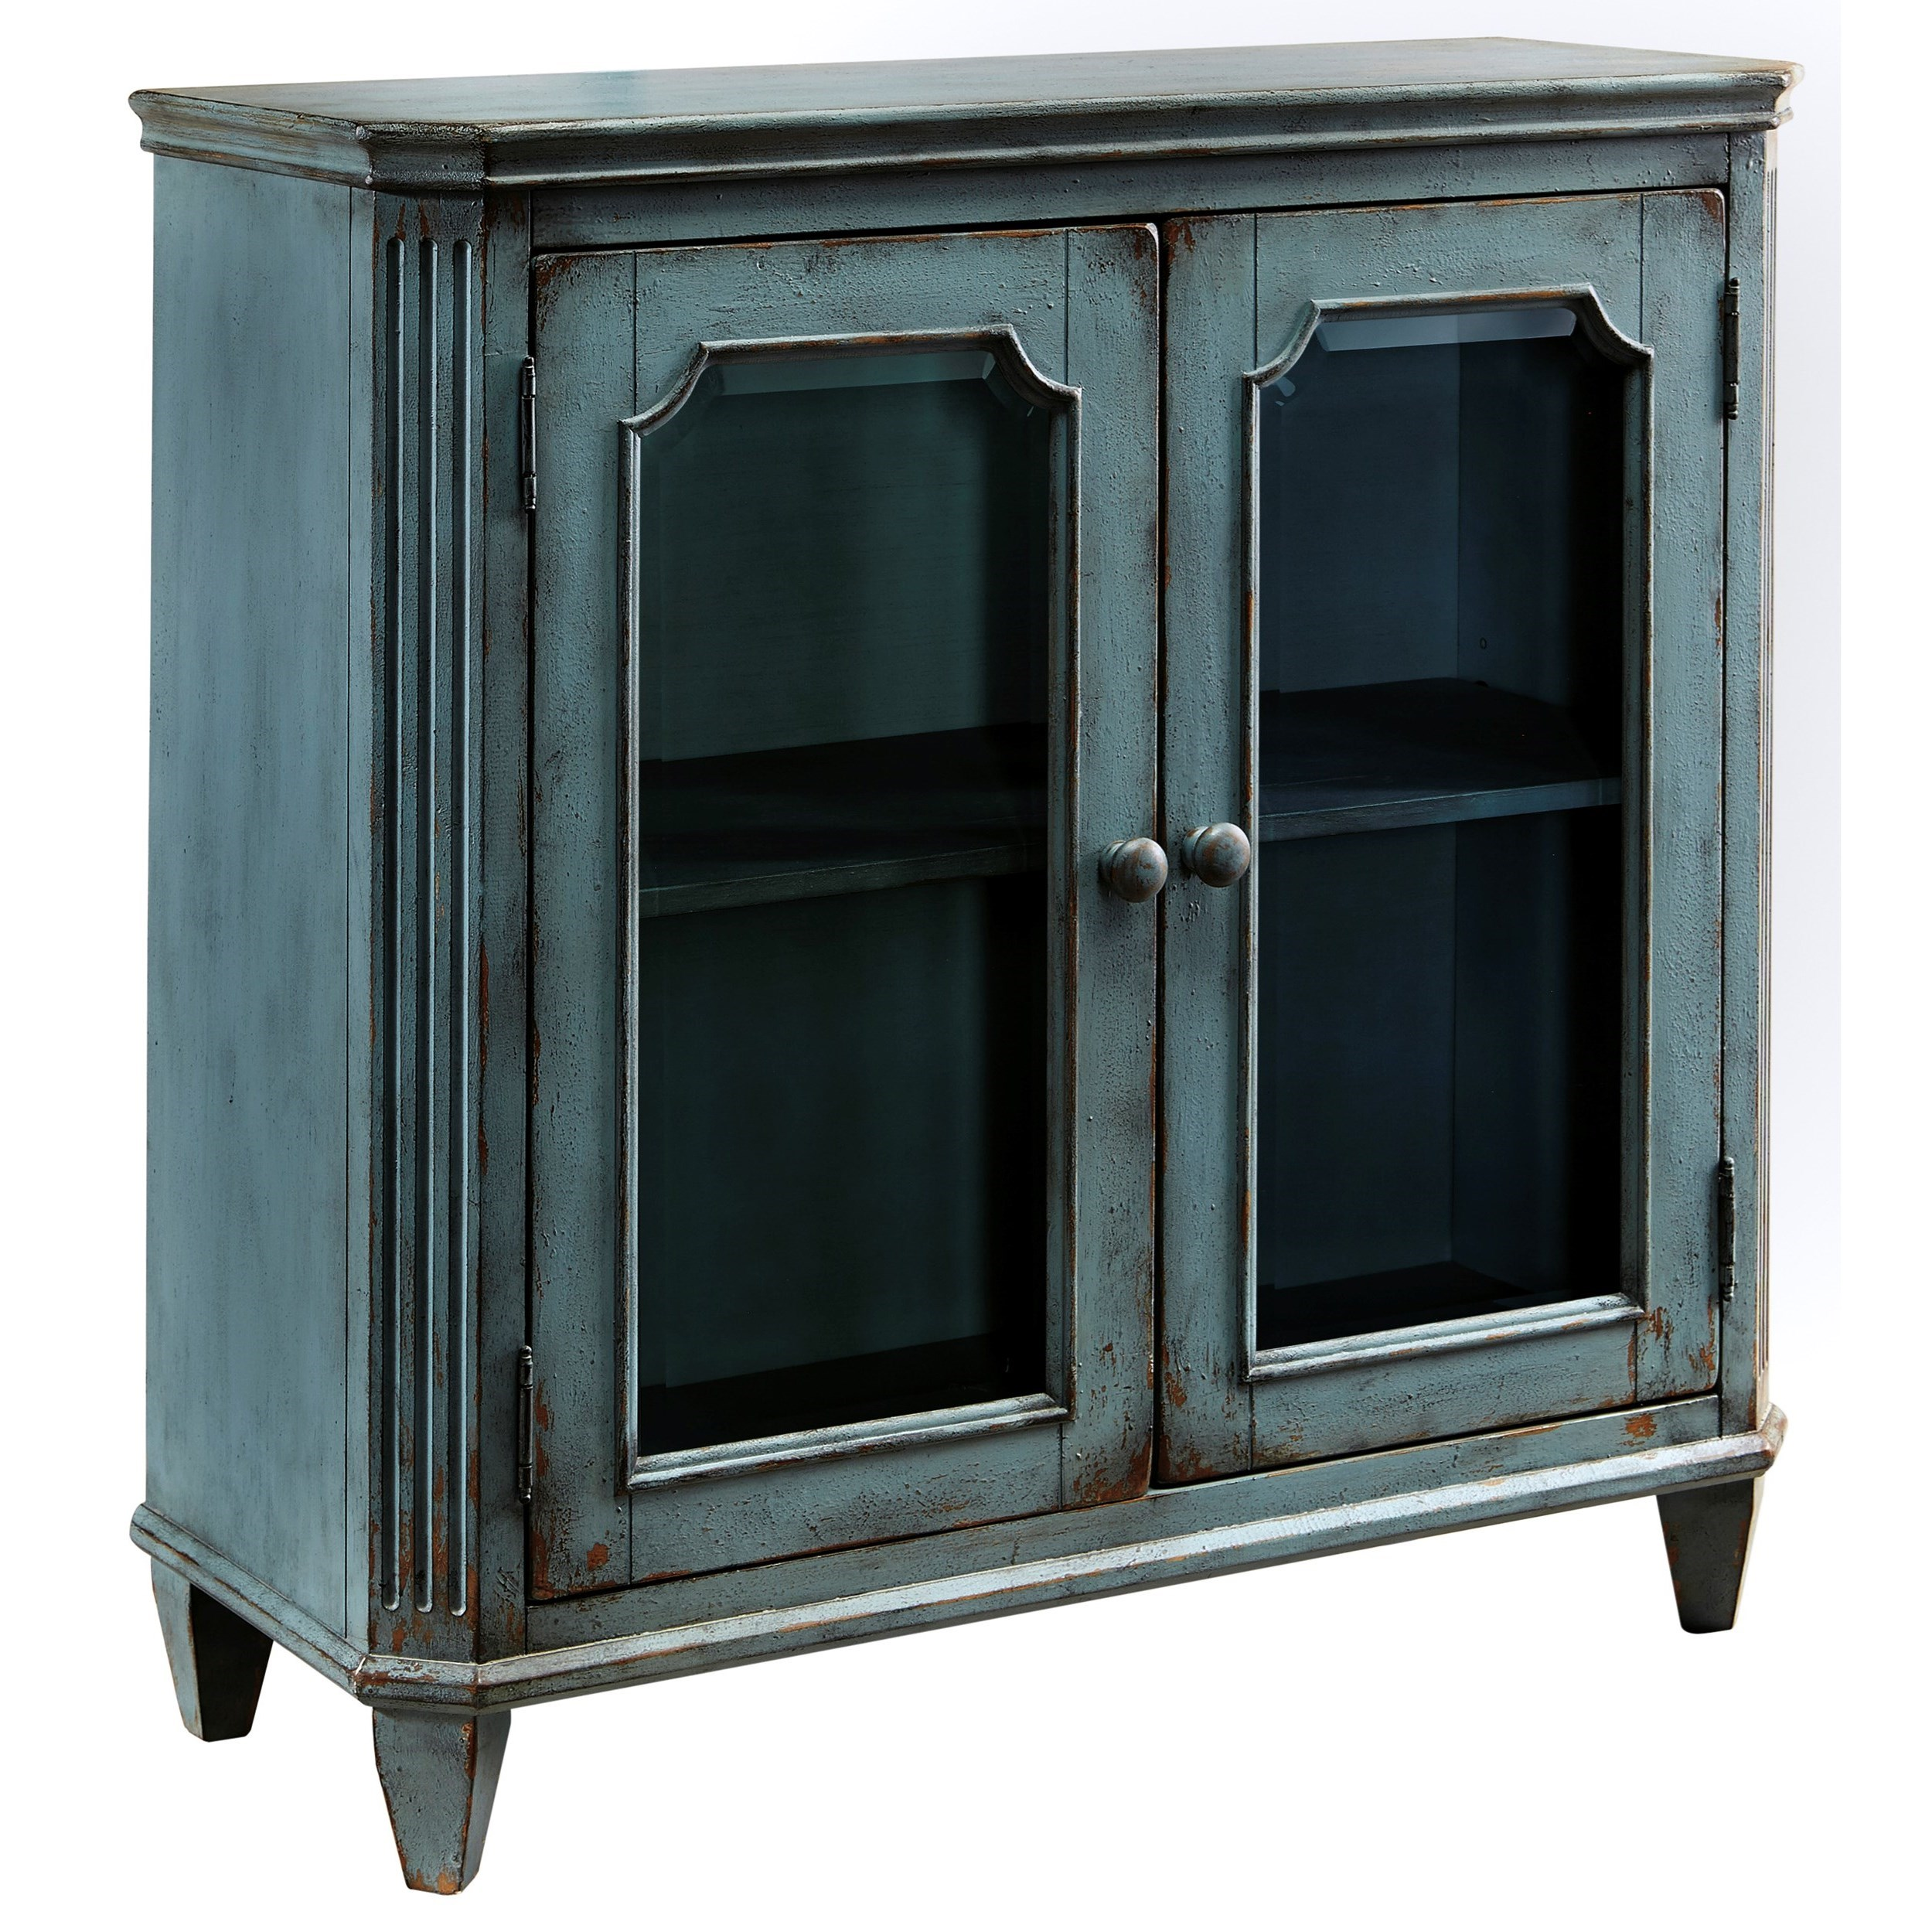 French Provincial Style Glass Door Accent Cabinet in